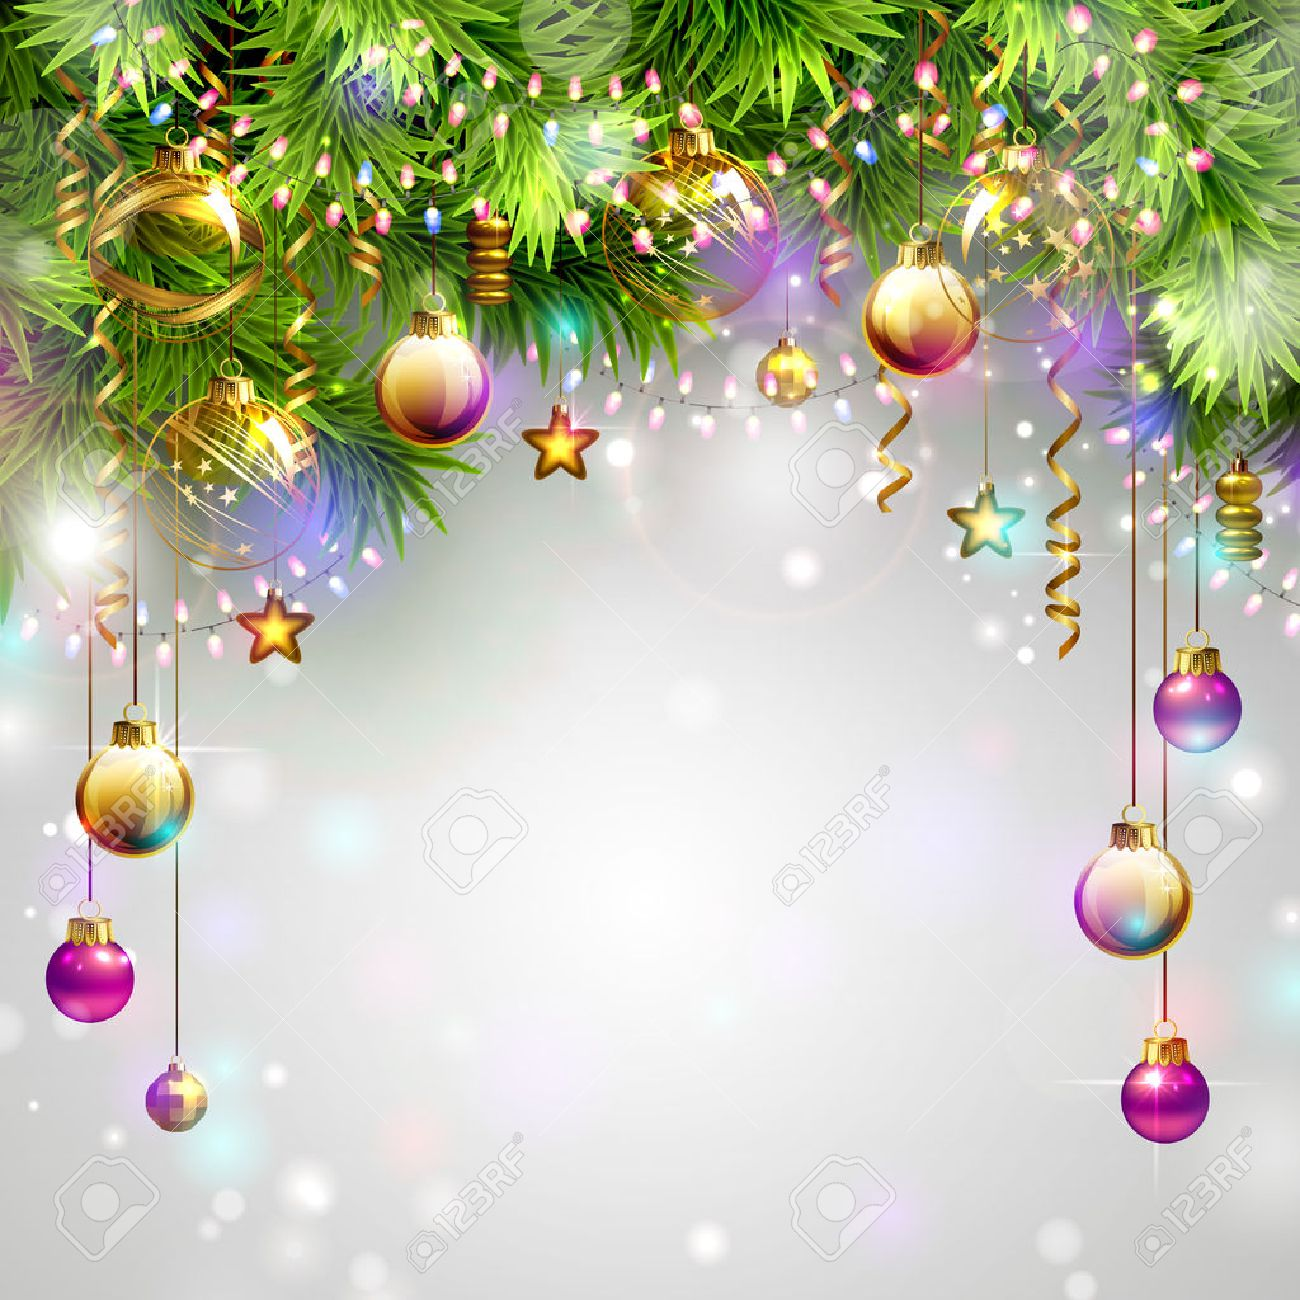 Christmas backgrounds with evening balls, garlands and fir-trees branches Stock Vector - 36528101